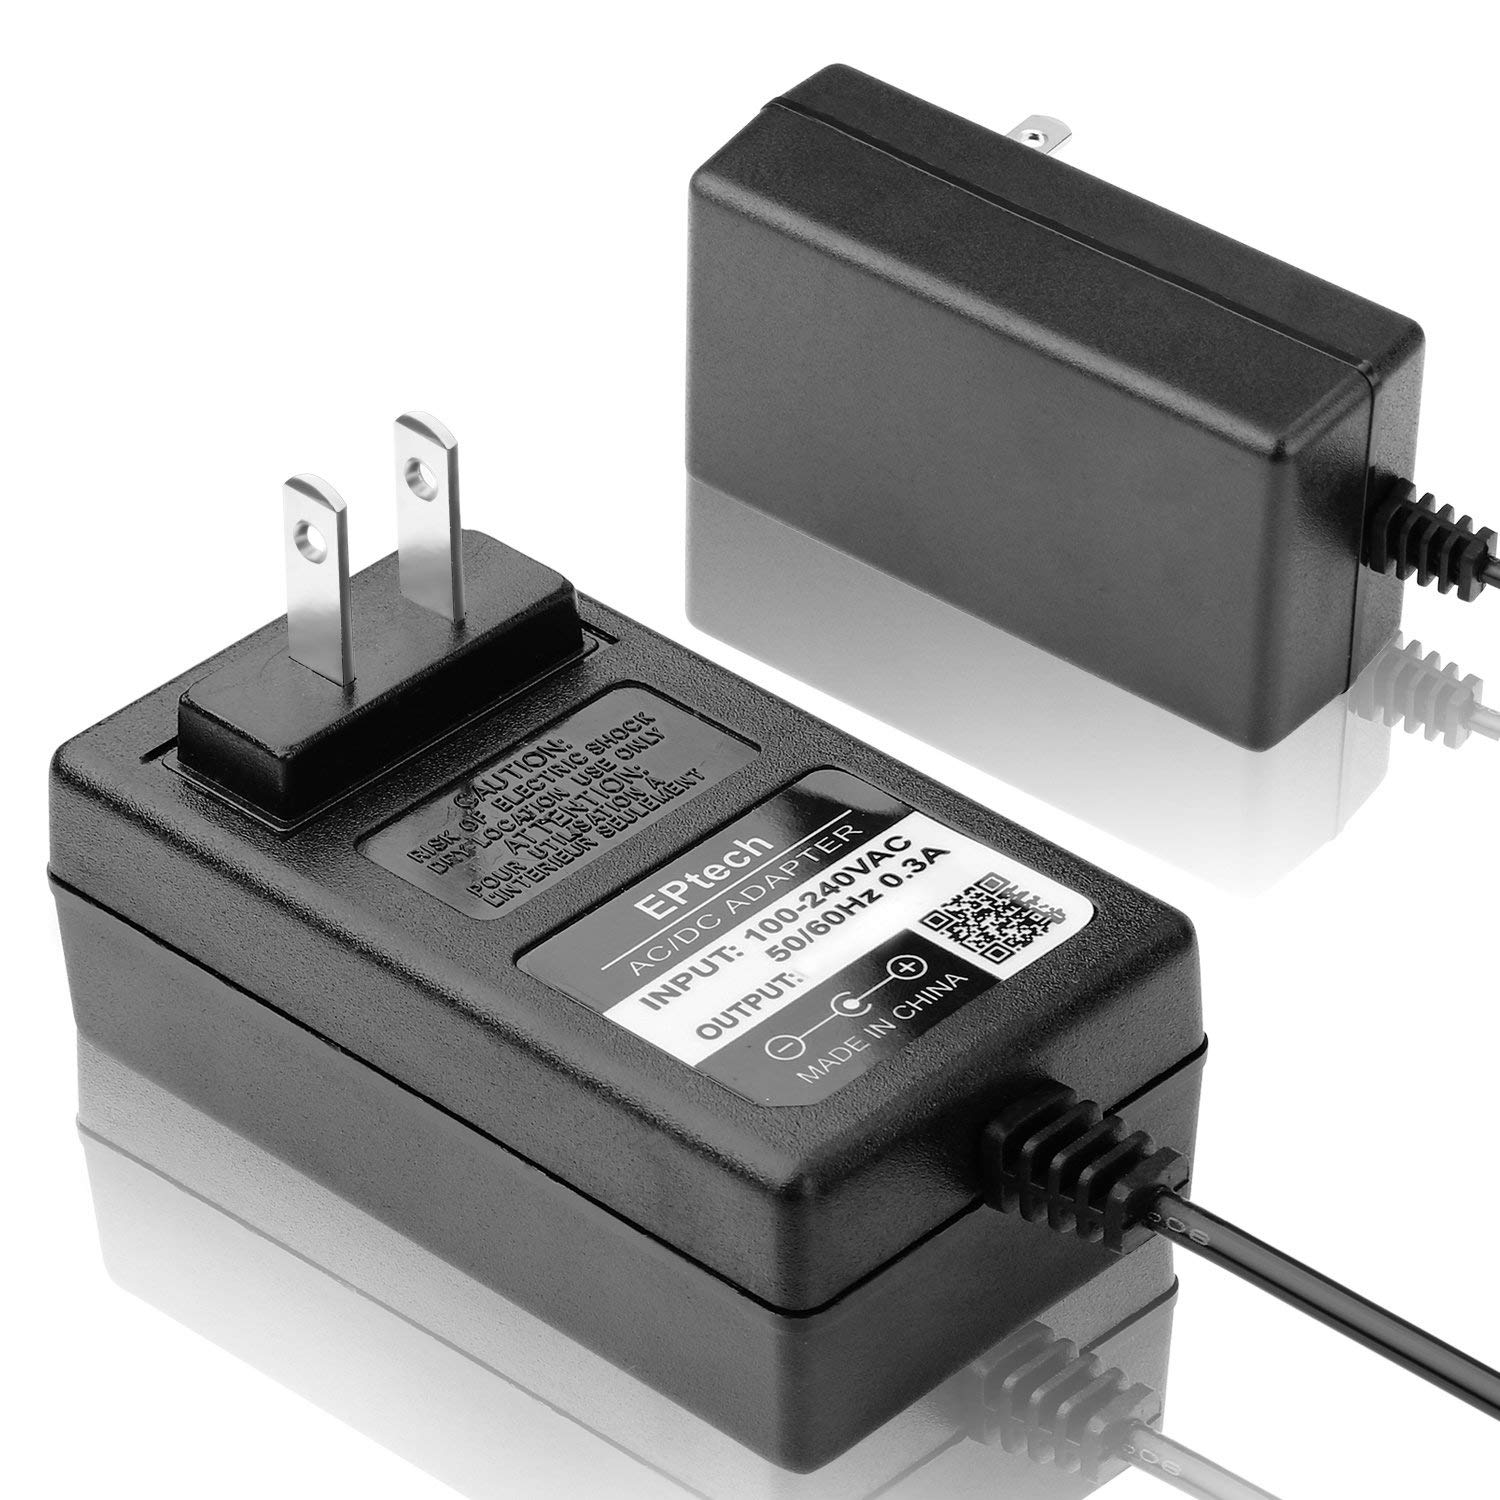 NEW AC Adapter For Ecovacs DN622 Deebot N79 14.4V DC Robotic Vacuum Power Supply